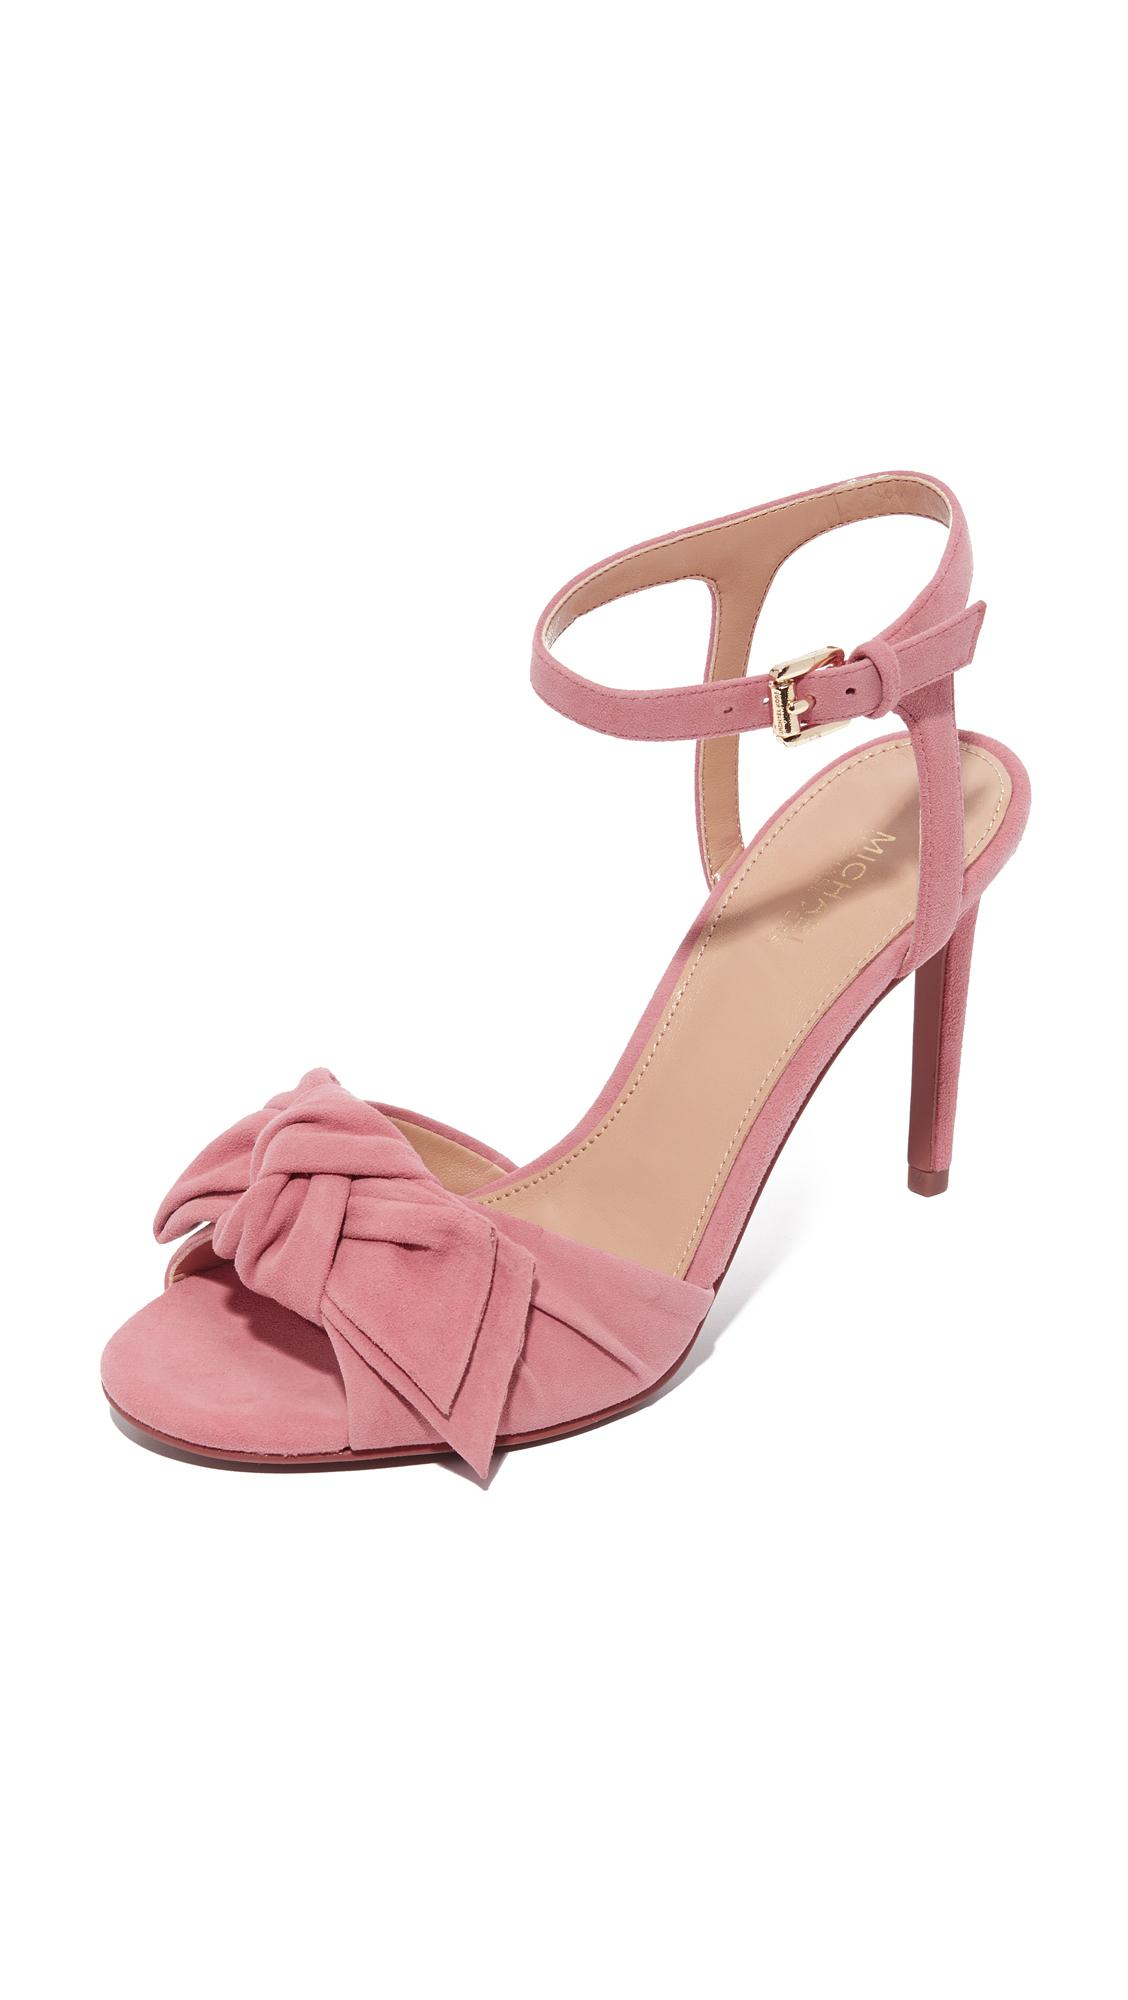 76c0358a700 Lyst - Michael Michael Kors Willa Sandals in Pink